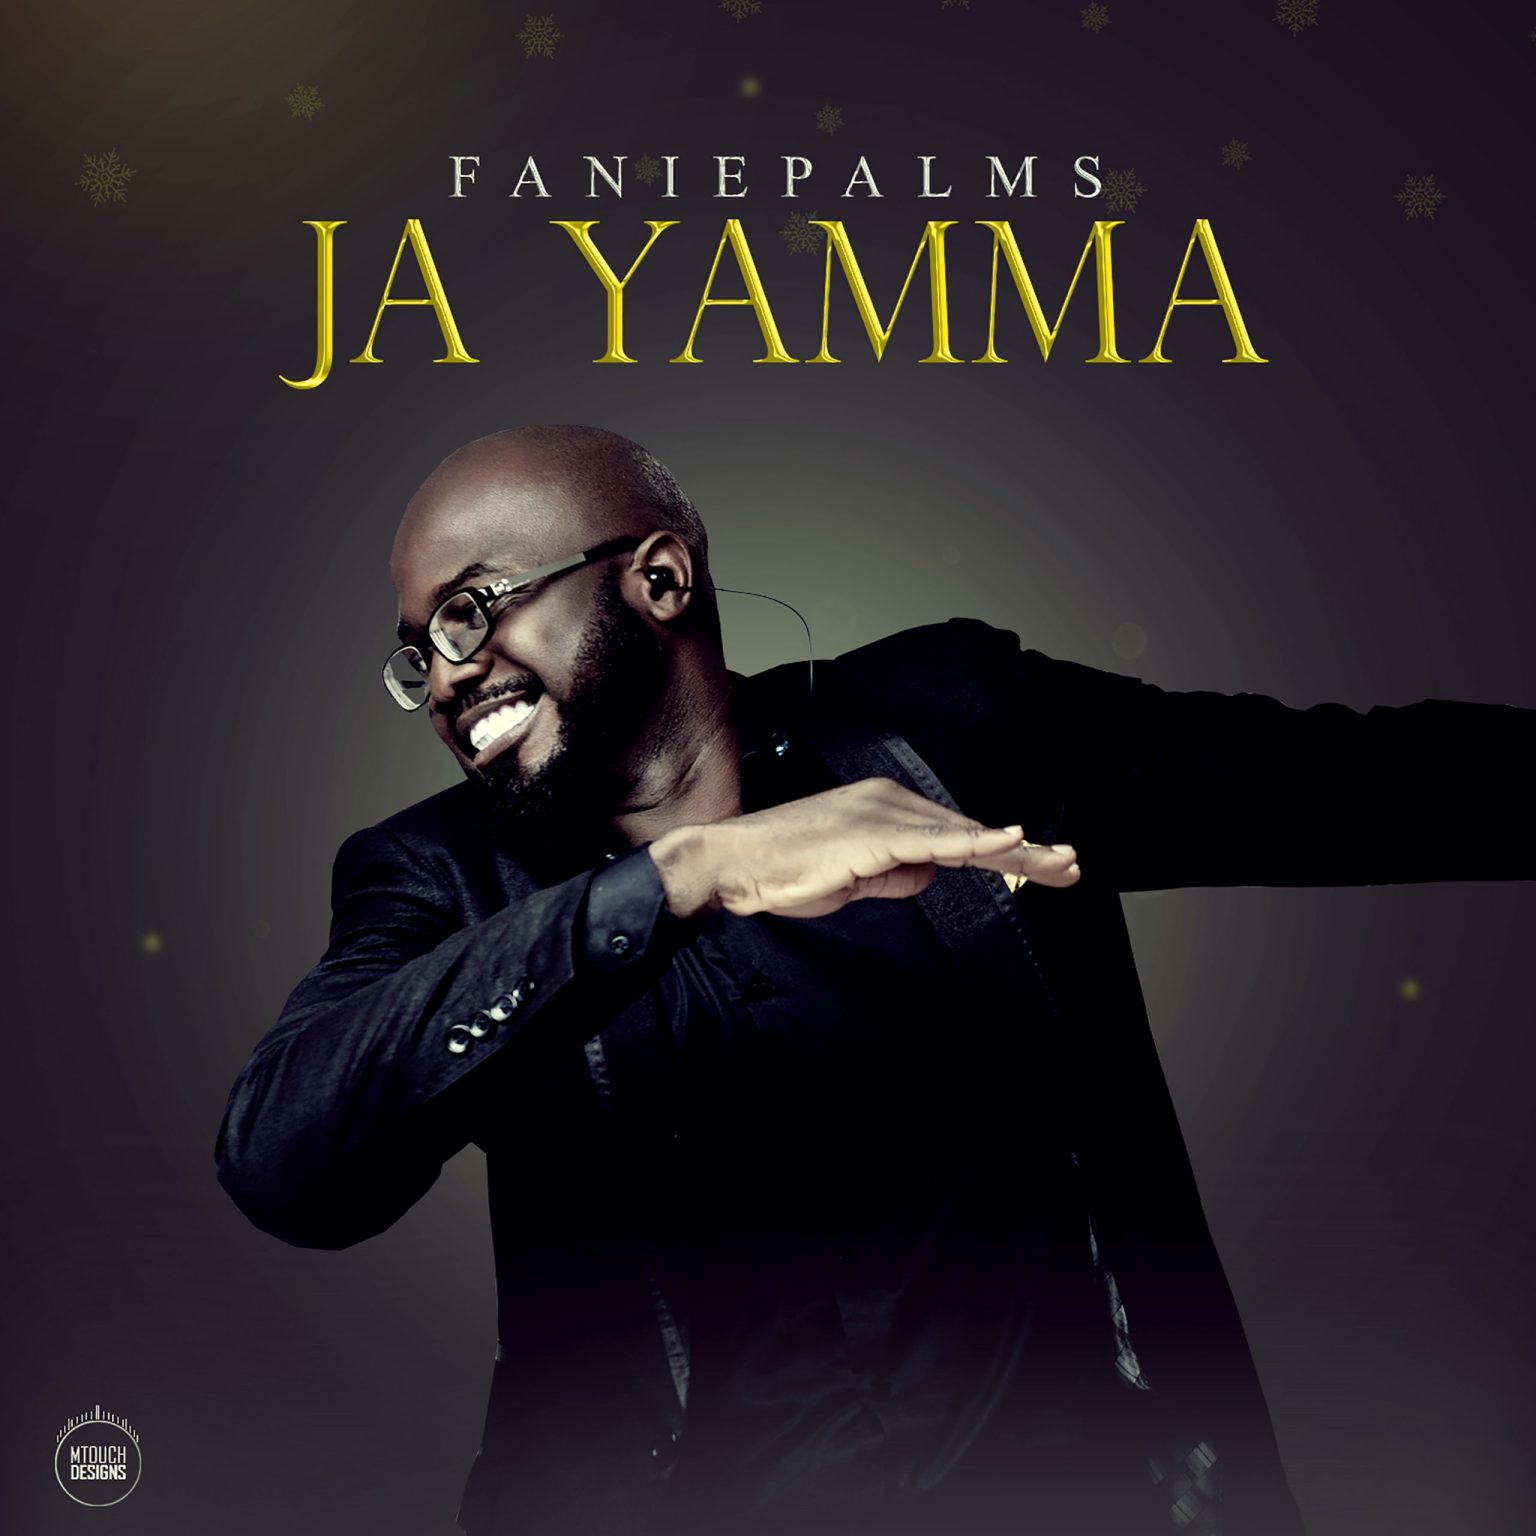 Ja Ya Mma By Faniepalms Lyrics And MP3 Download